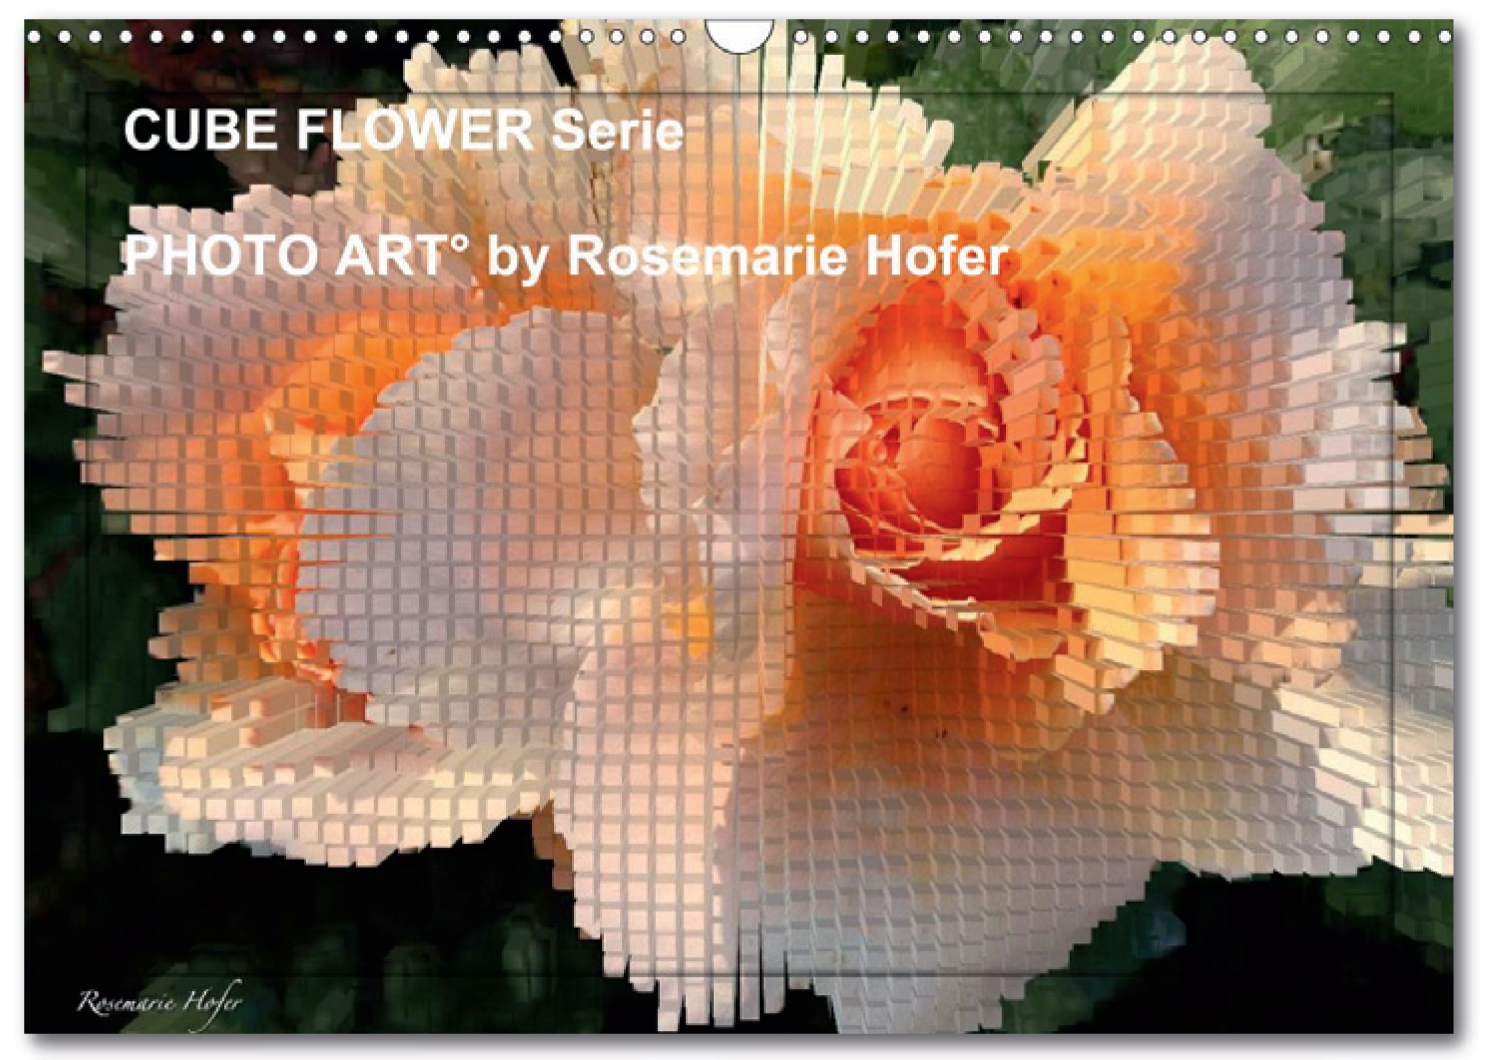 Posterbook-CUBE-FLOWER PHOTO-ART°-by-Rosemarie-Hofer